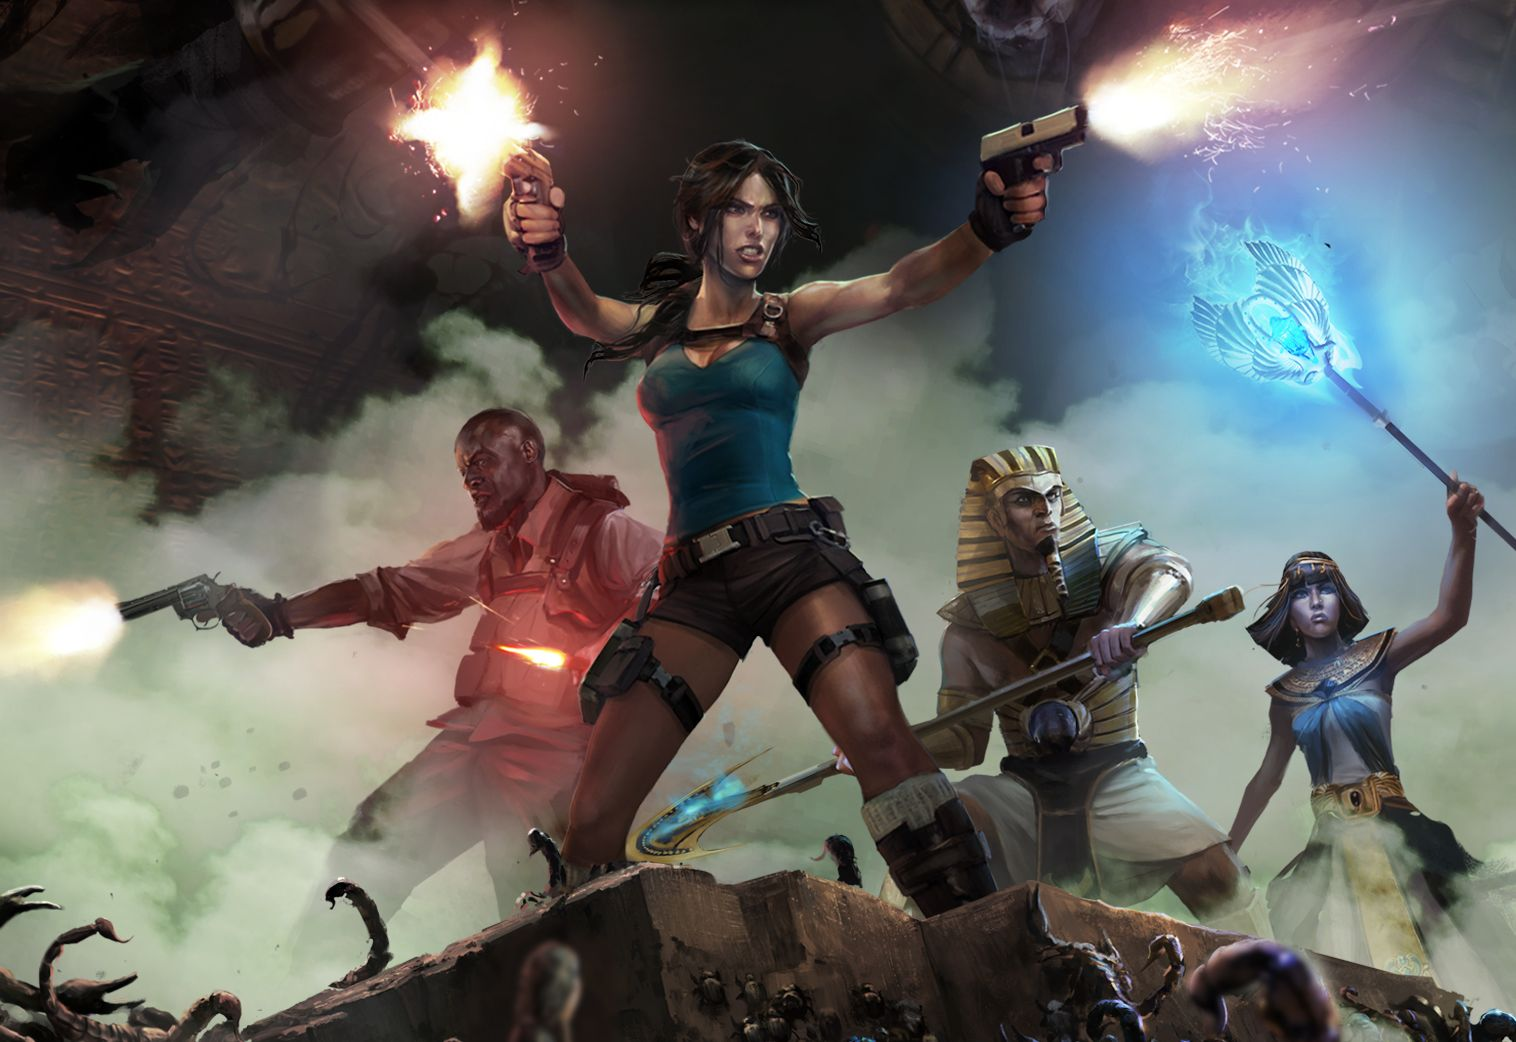 Lara Croft And The Temple Of Osiris hands-on preview – Tomb Raider(s)